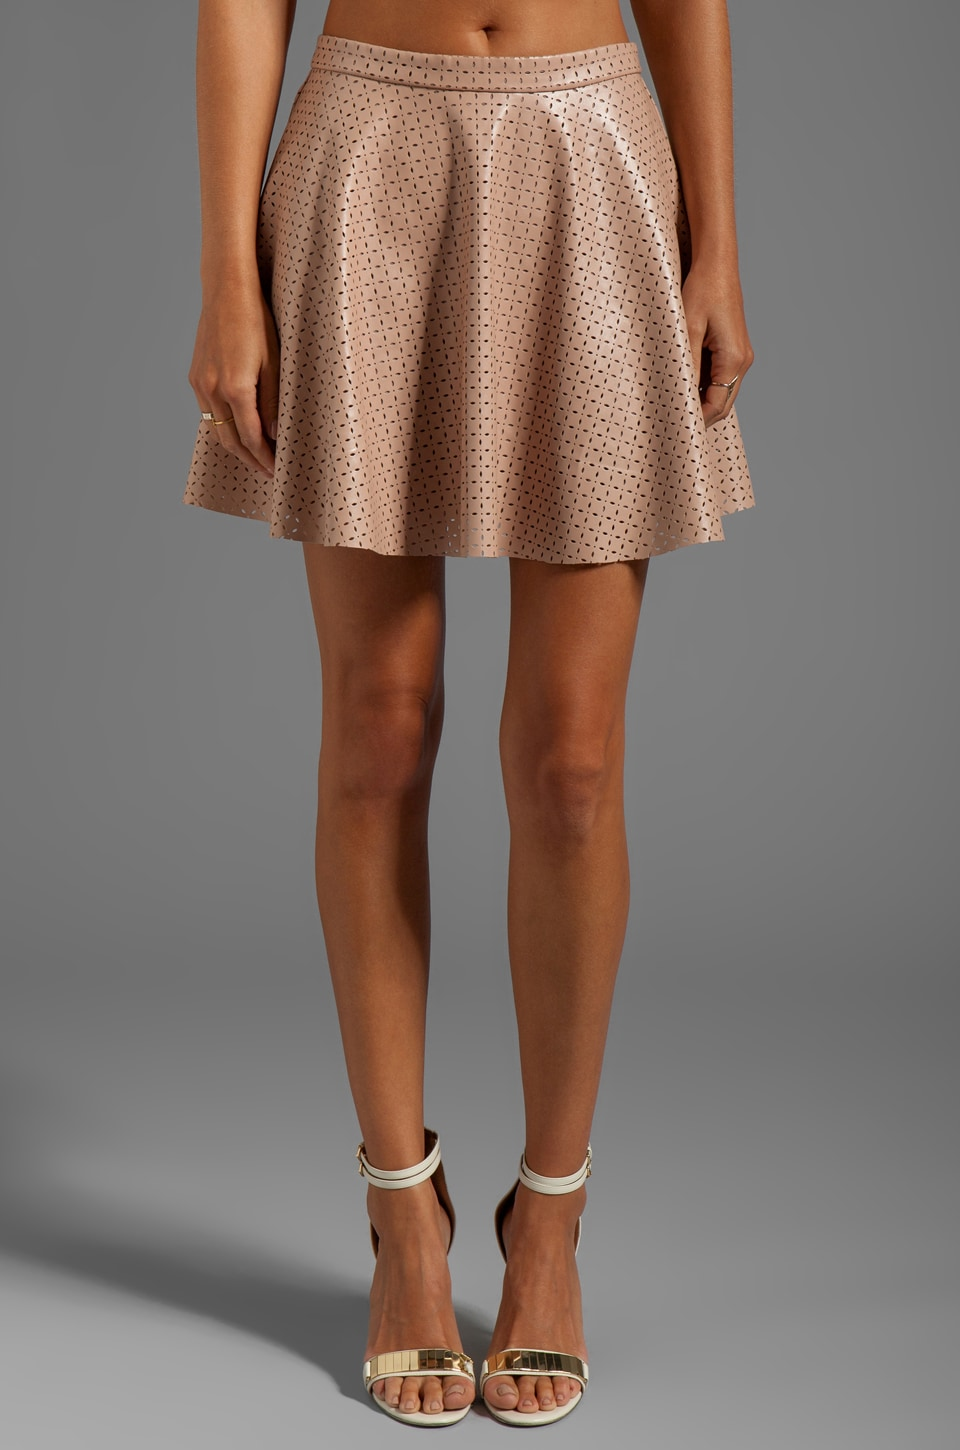 Lucca Couture Mini Skirt in Blush